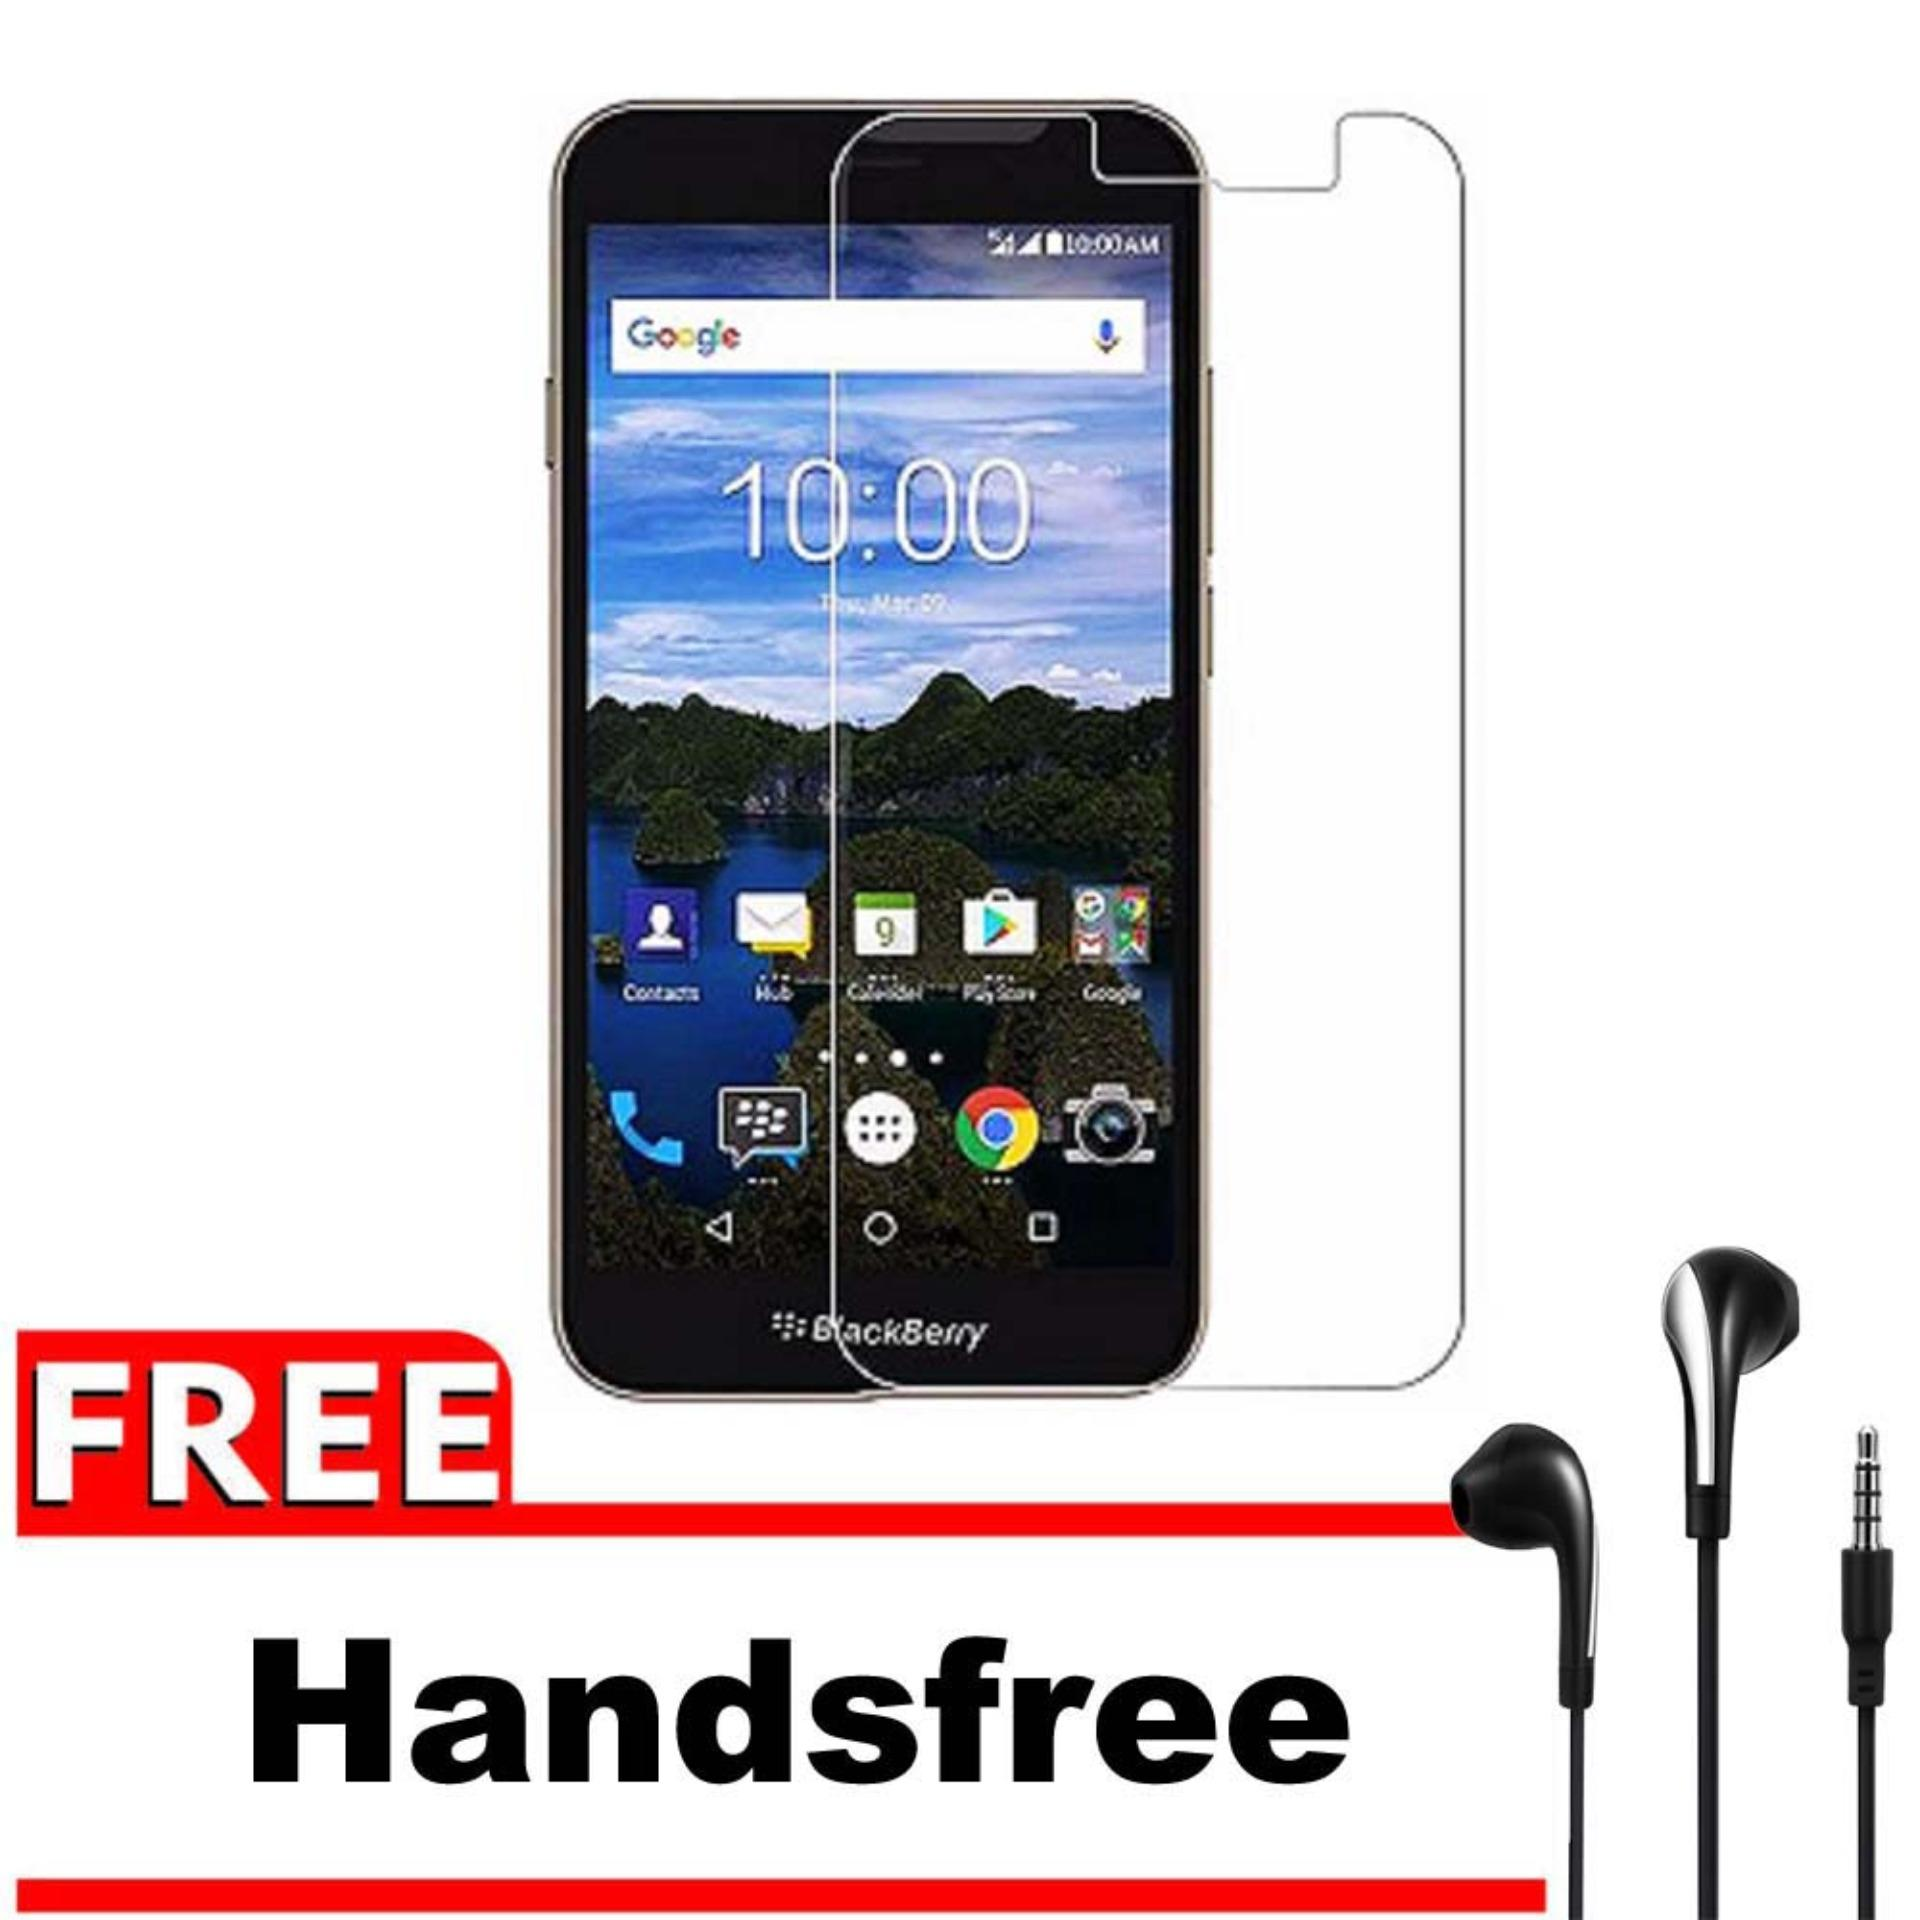 Vn Blackberry BB Aurora (C1001)Tempered Glass 9H Screen Protector 0.32mm + Gratis Free Handsfree Earphone Headset Universal - Bening Transparan